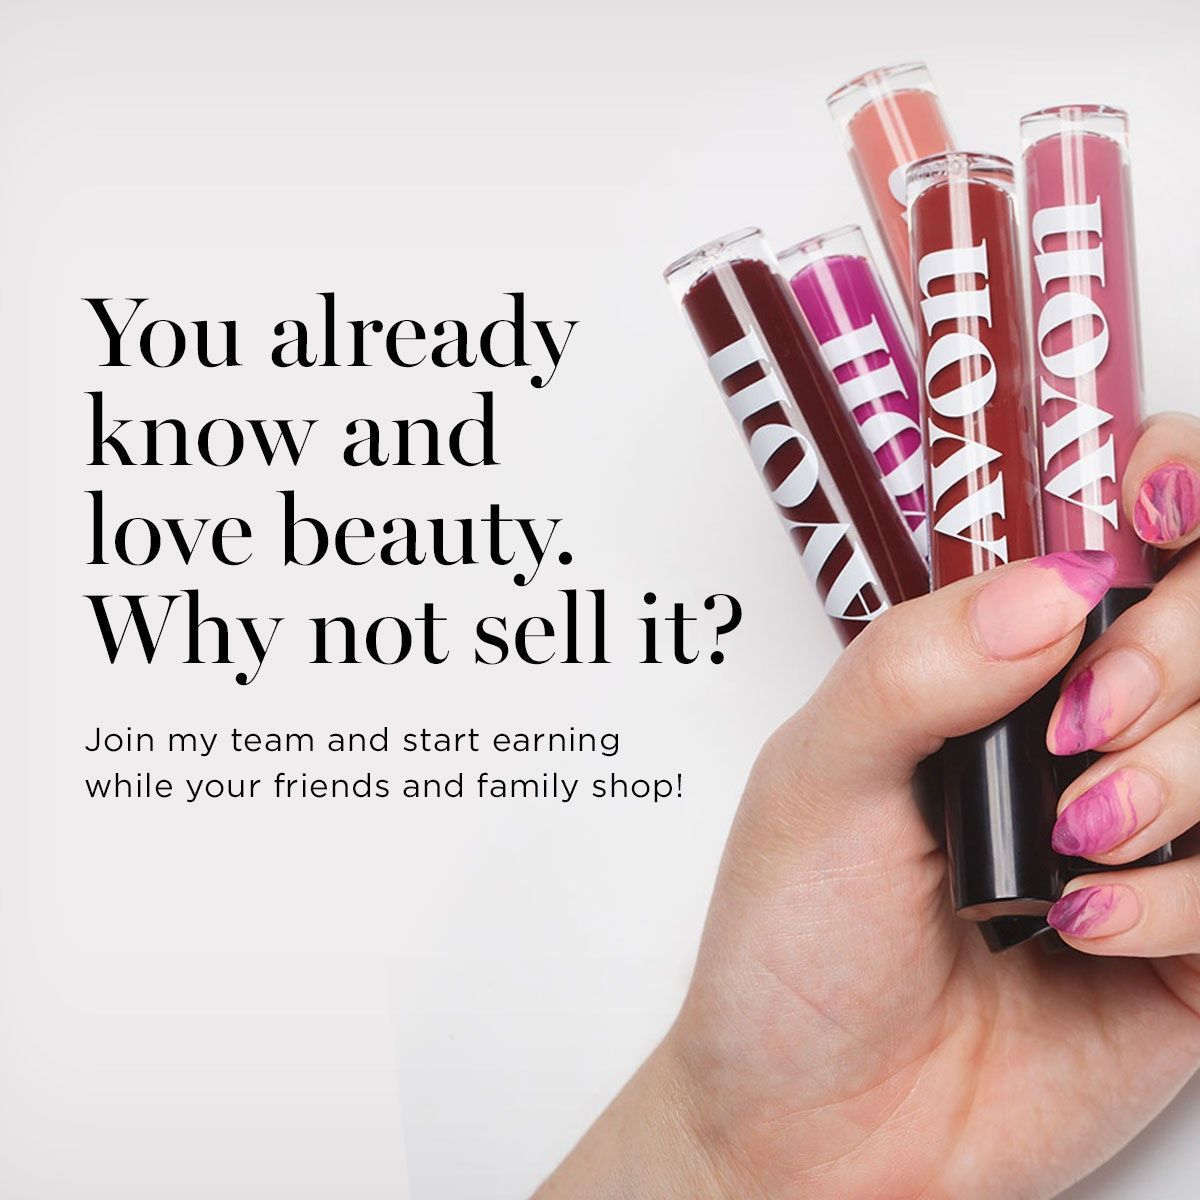 Are you a beauty influencer? Why not sell beauty? You can join Avon today for free and start earning right away! #beautyinfluencer #lovebeauty #joinforfree #earnwhileyouinfluencepic.twitter.com/ugWTM0bnmN